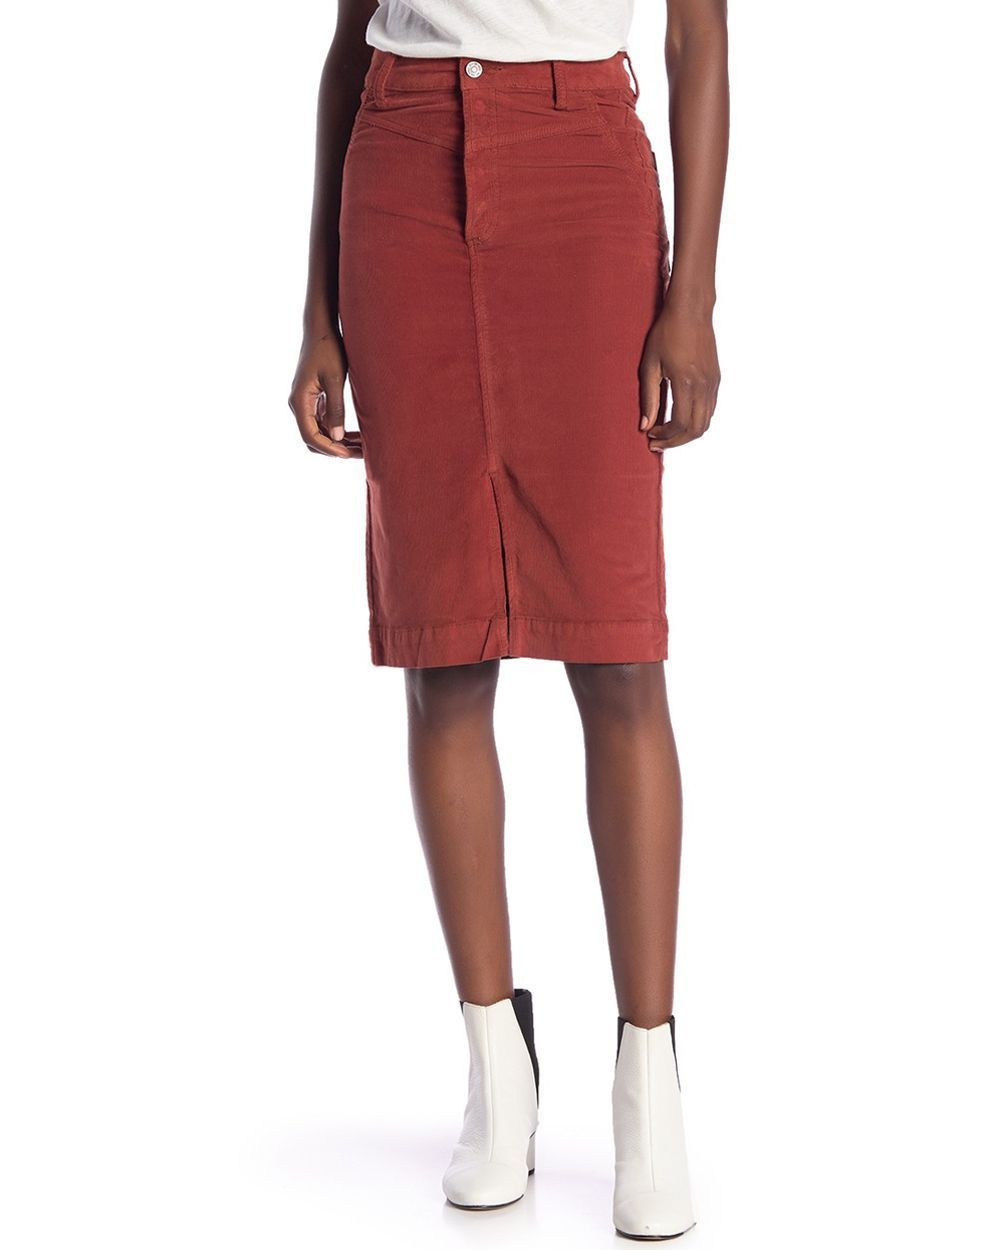 Free People Rosemary Cord Brick Red Pencil Skirt 25 Buy Clothing Online Best Price And Offers Ksa Hnak Com